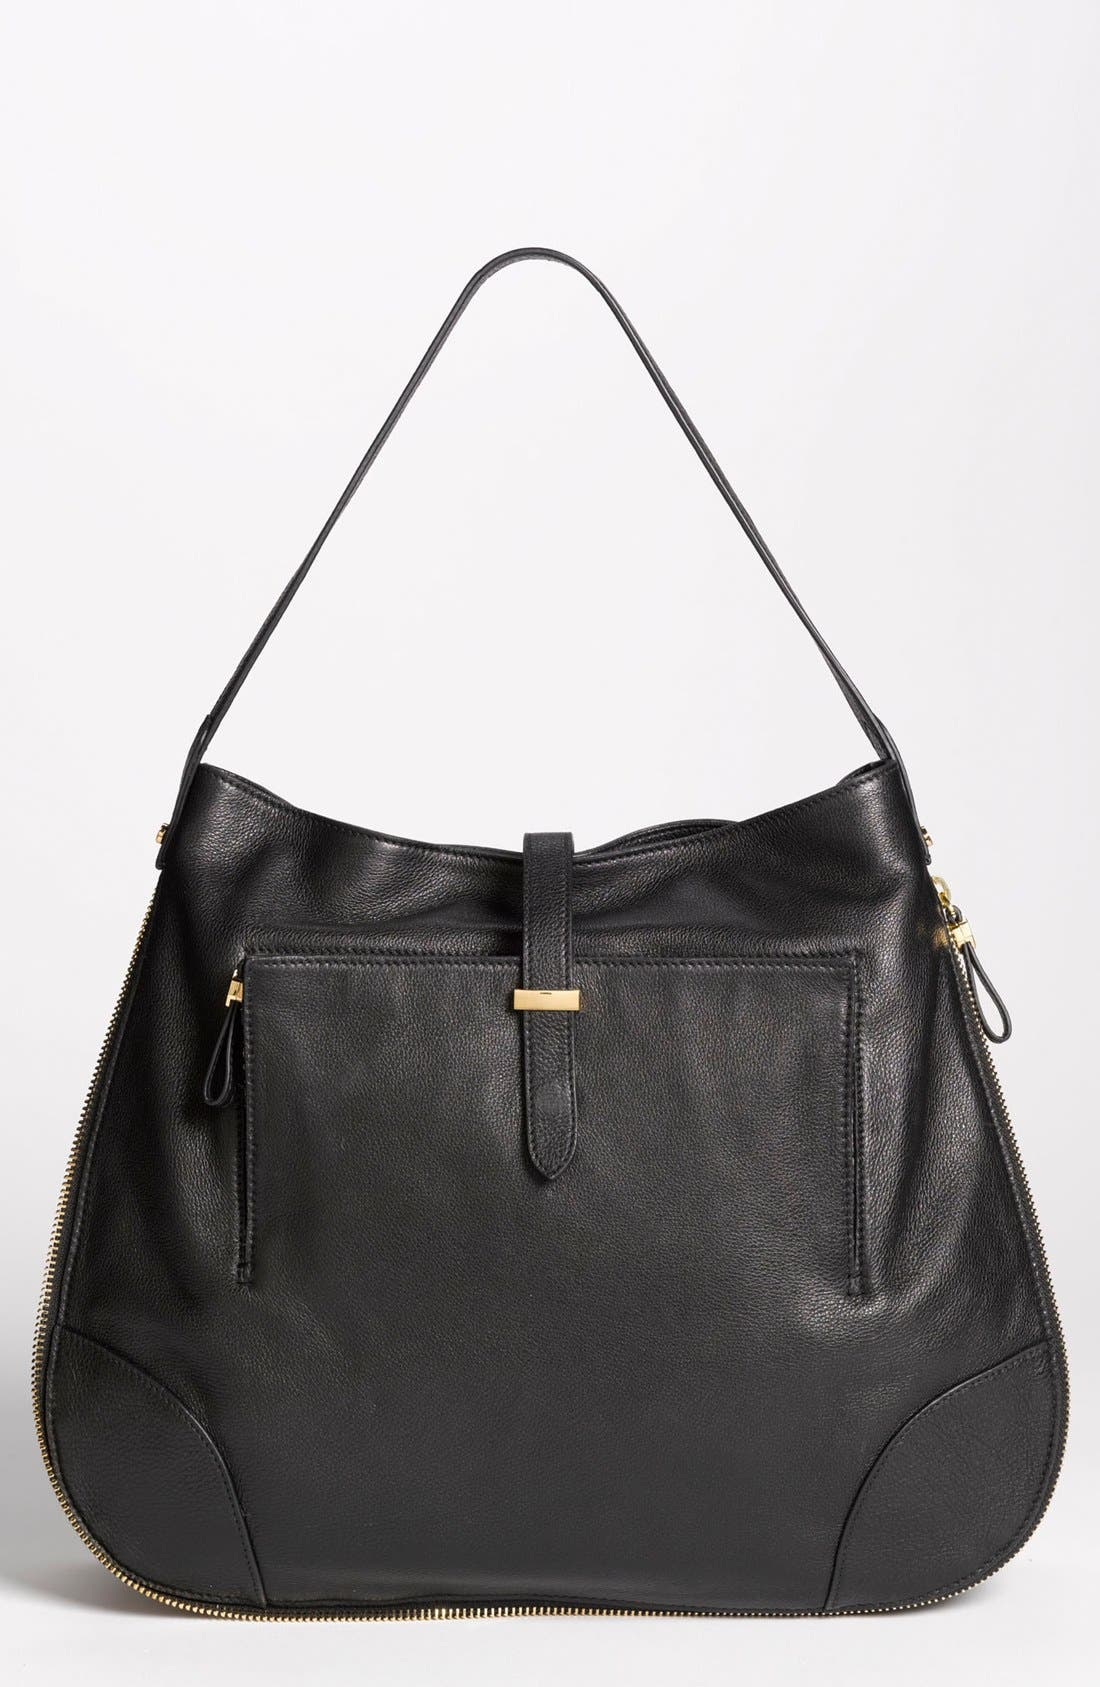 Main Image - Tory Burch 'Clay - Classic' Leather Hobo